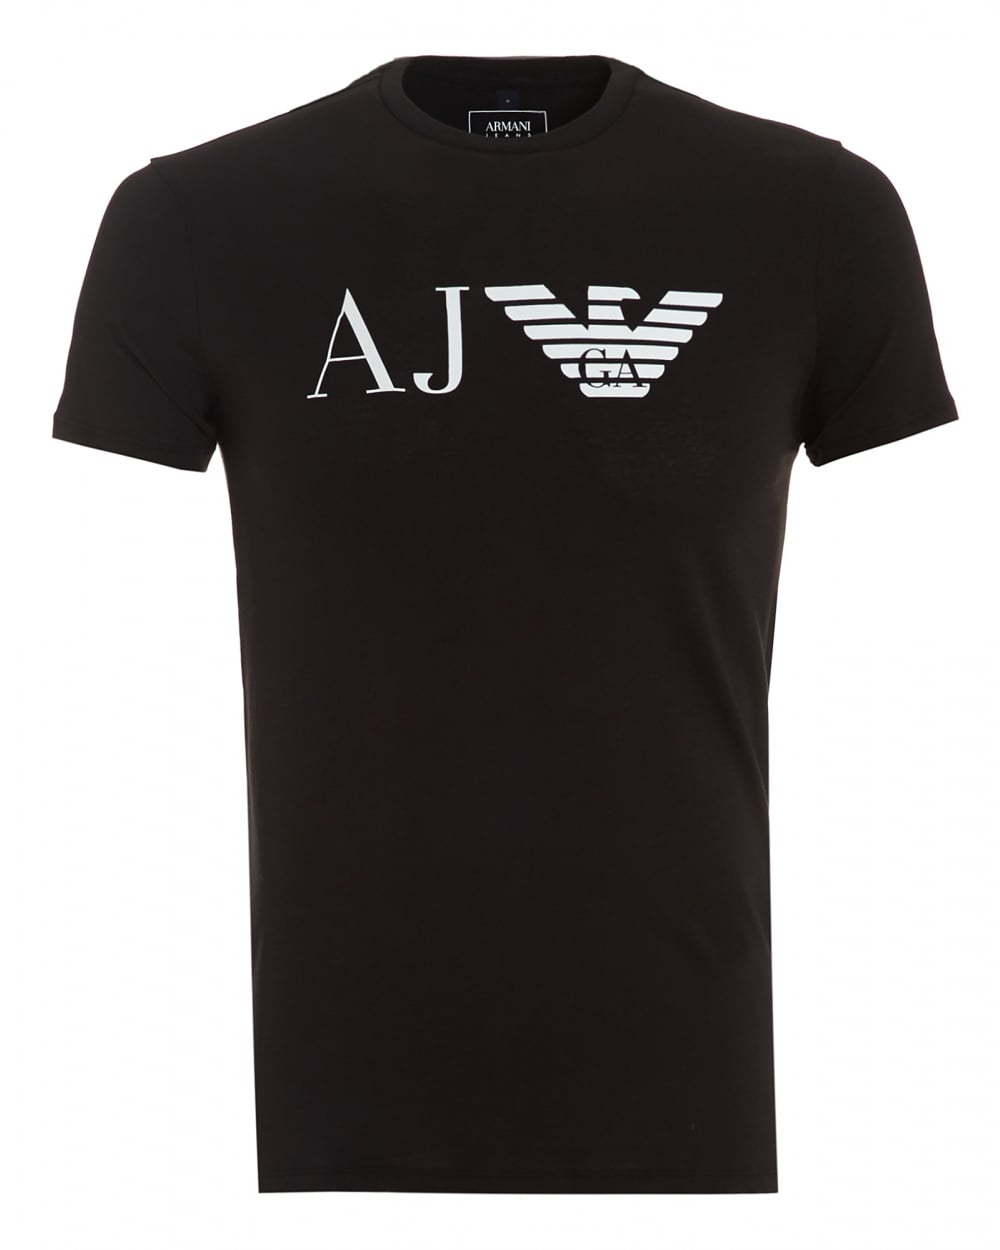 armani jeans mens aj logo t shirt slim fit black tee